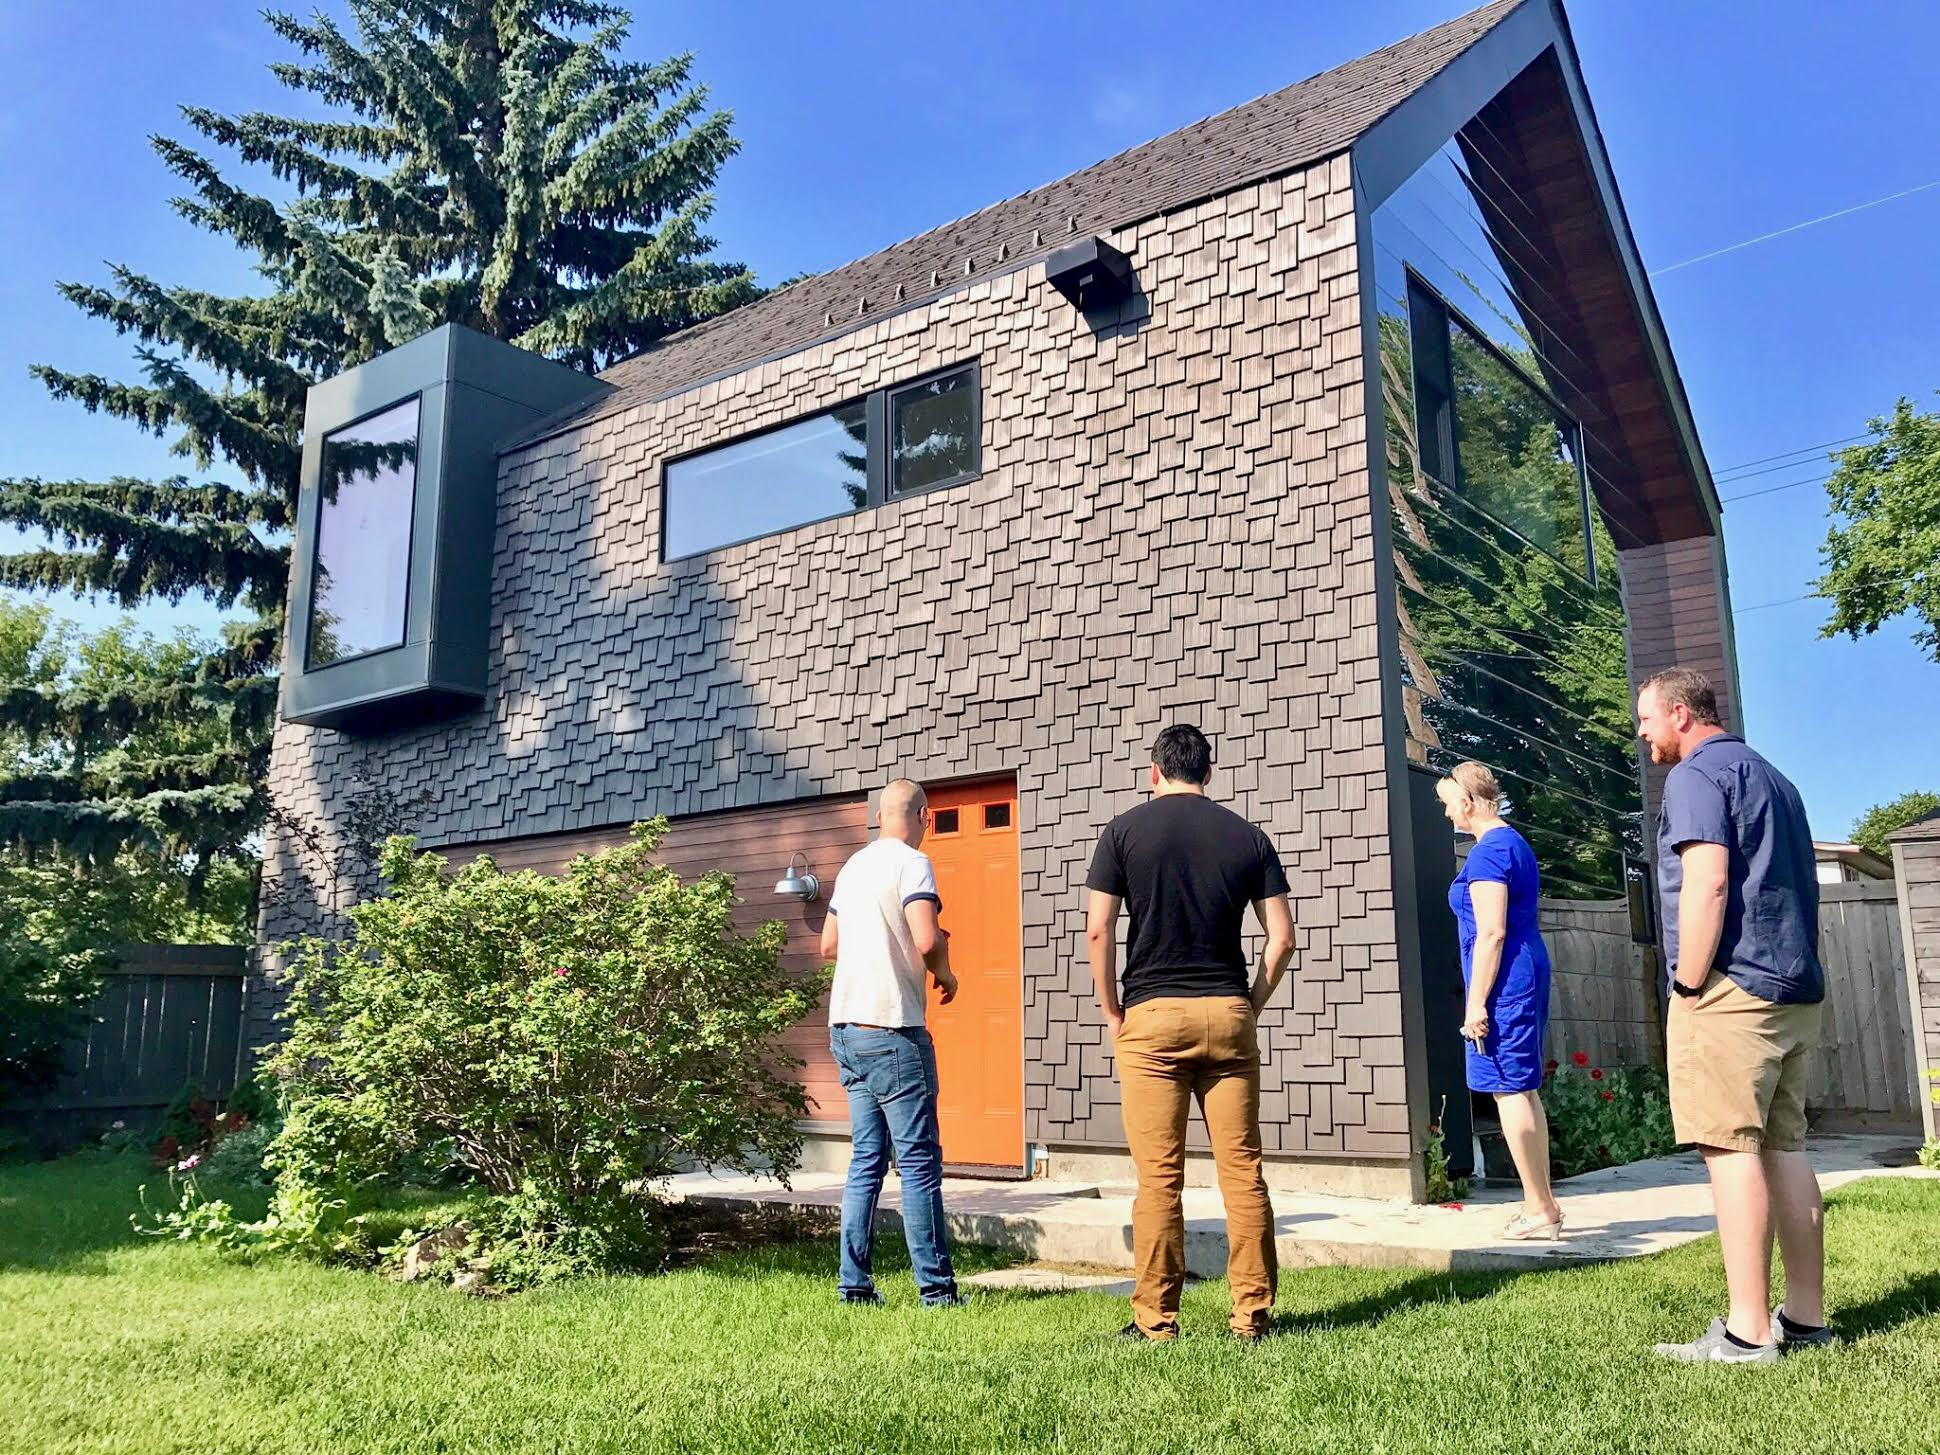 Garden Suites In Edmonton: A Private Investment In The Public Good |  Accessory Dwellings